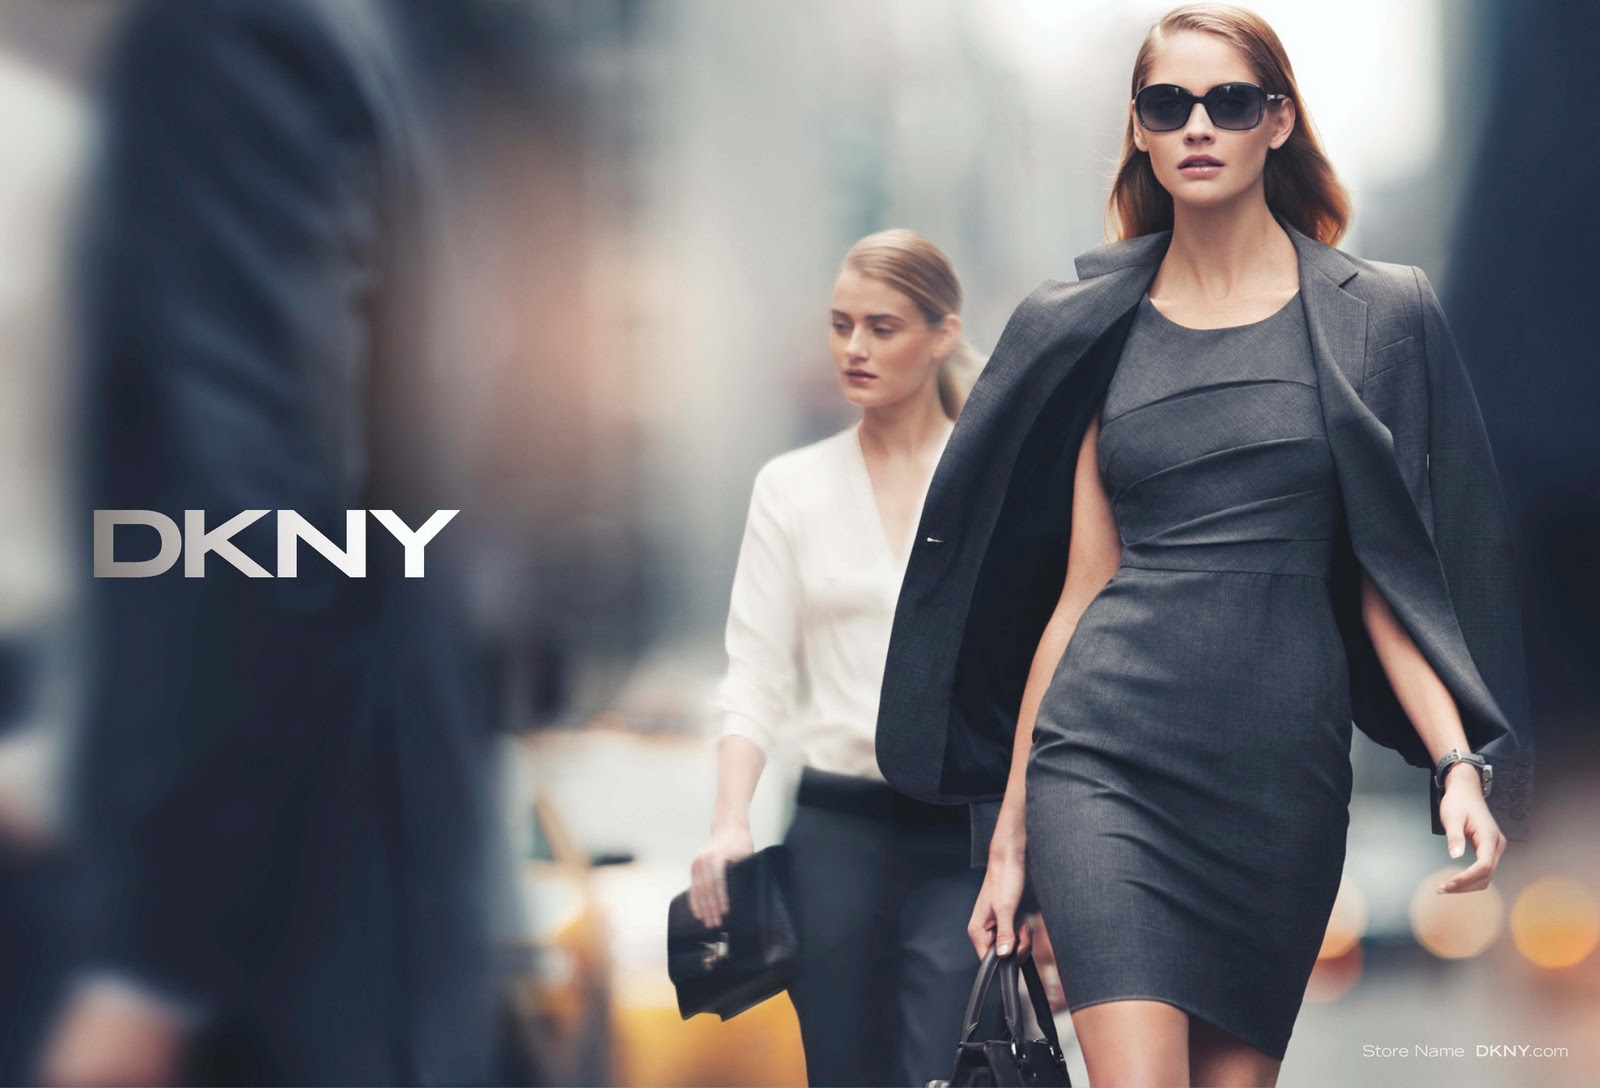 .: DKNY SPRING 2011 AD CAMPAIGN